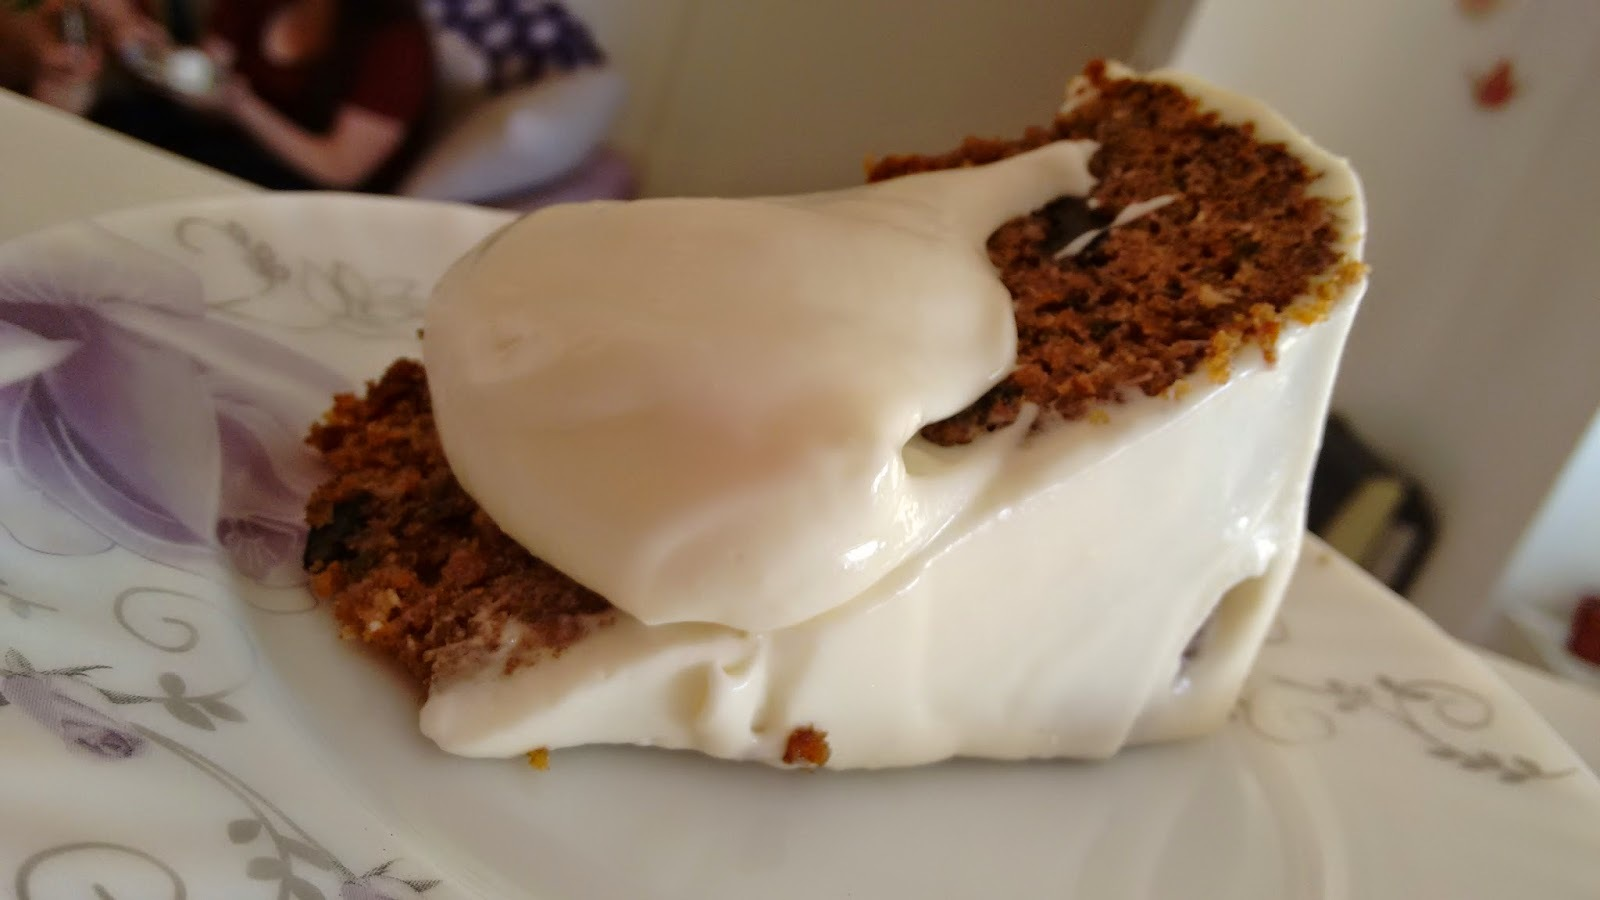 Torta deliciosa de zanahoria para comer con grandes amigos - Amazing carrot cake to share with great friends